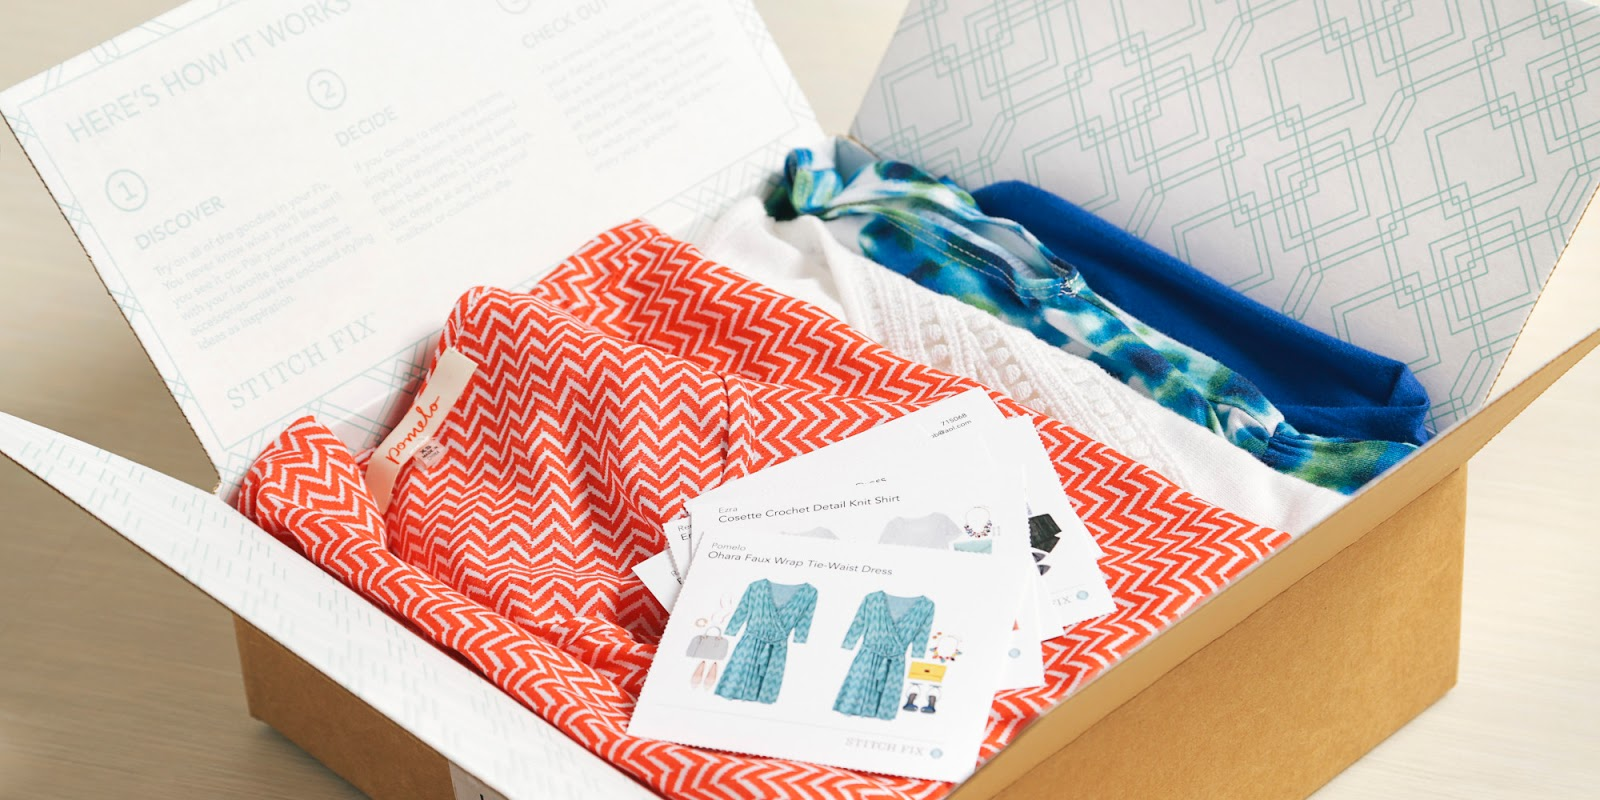 Stitch Fix: Clothes Designed by Artificial Intelligence